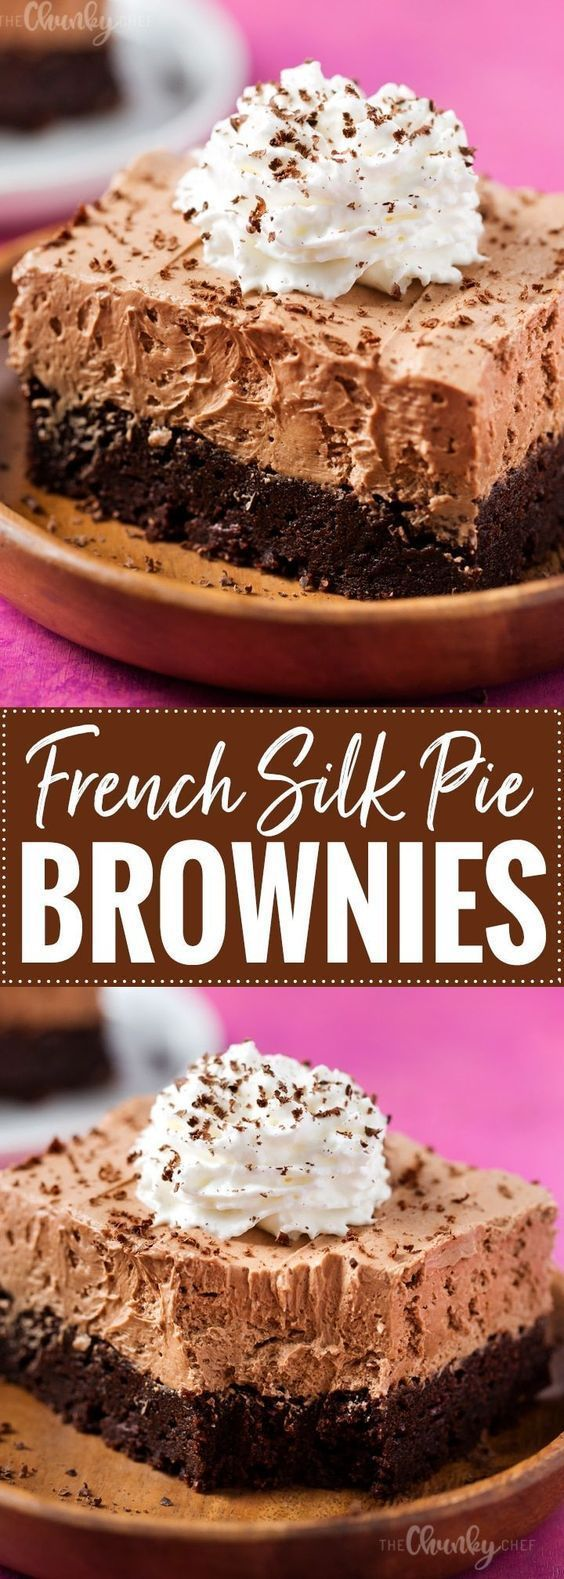 French Chocolate Silk Pie Brownies recipe | FUDGY BROWNIES TOPPED WITH A DECADENTLY RICH FRENCH SILK PIE FILLING, WHIPPED CREAM AND SHAVED CHOCOLATE… Add this to your chocolate pie recipes board! #brownies #chocolatebrownies #chocolate